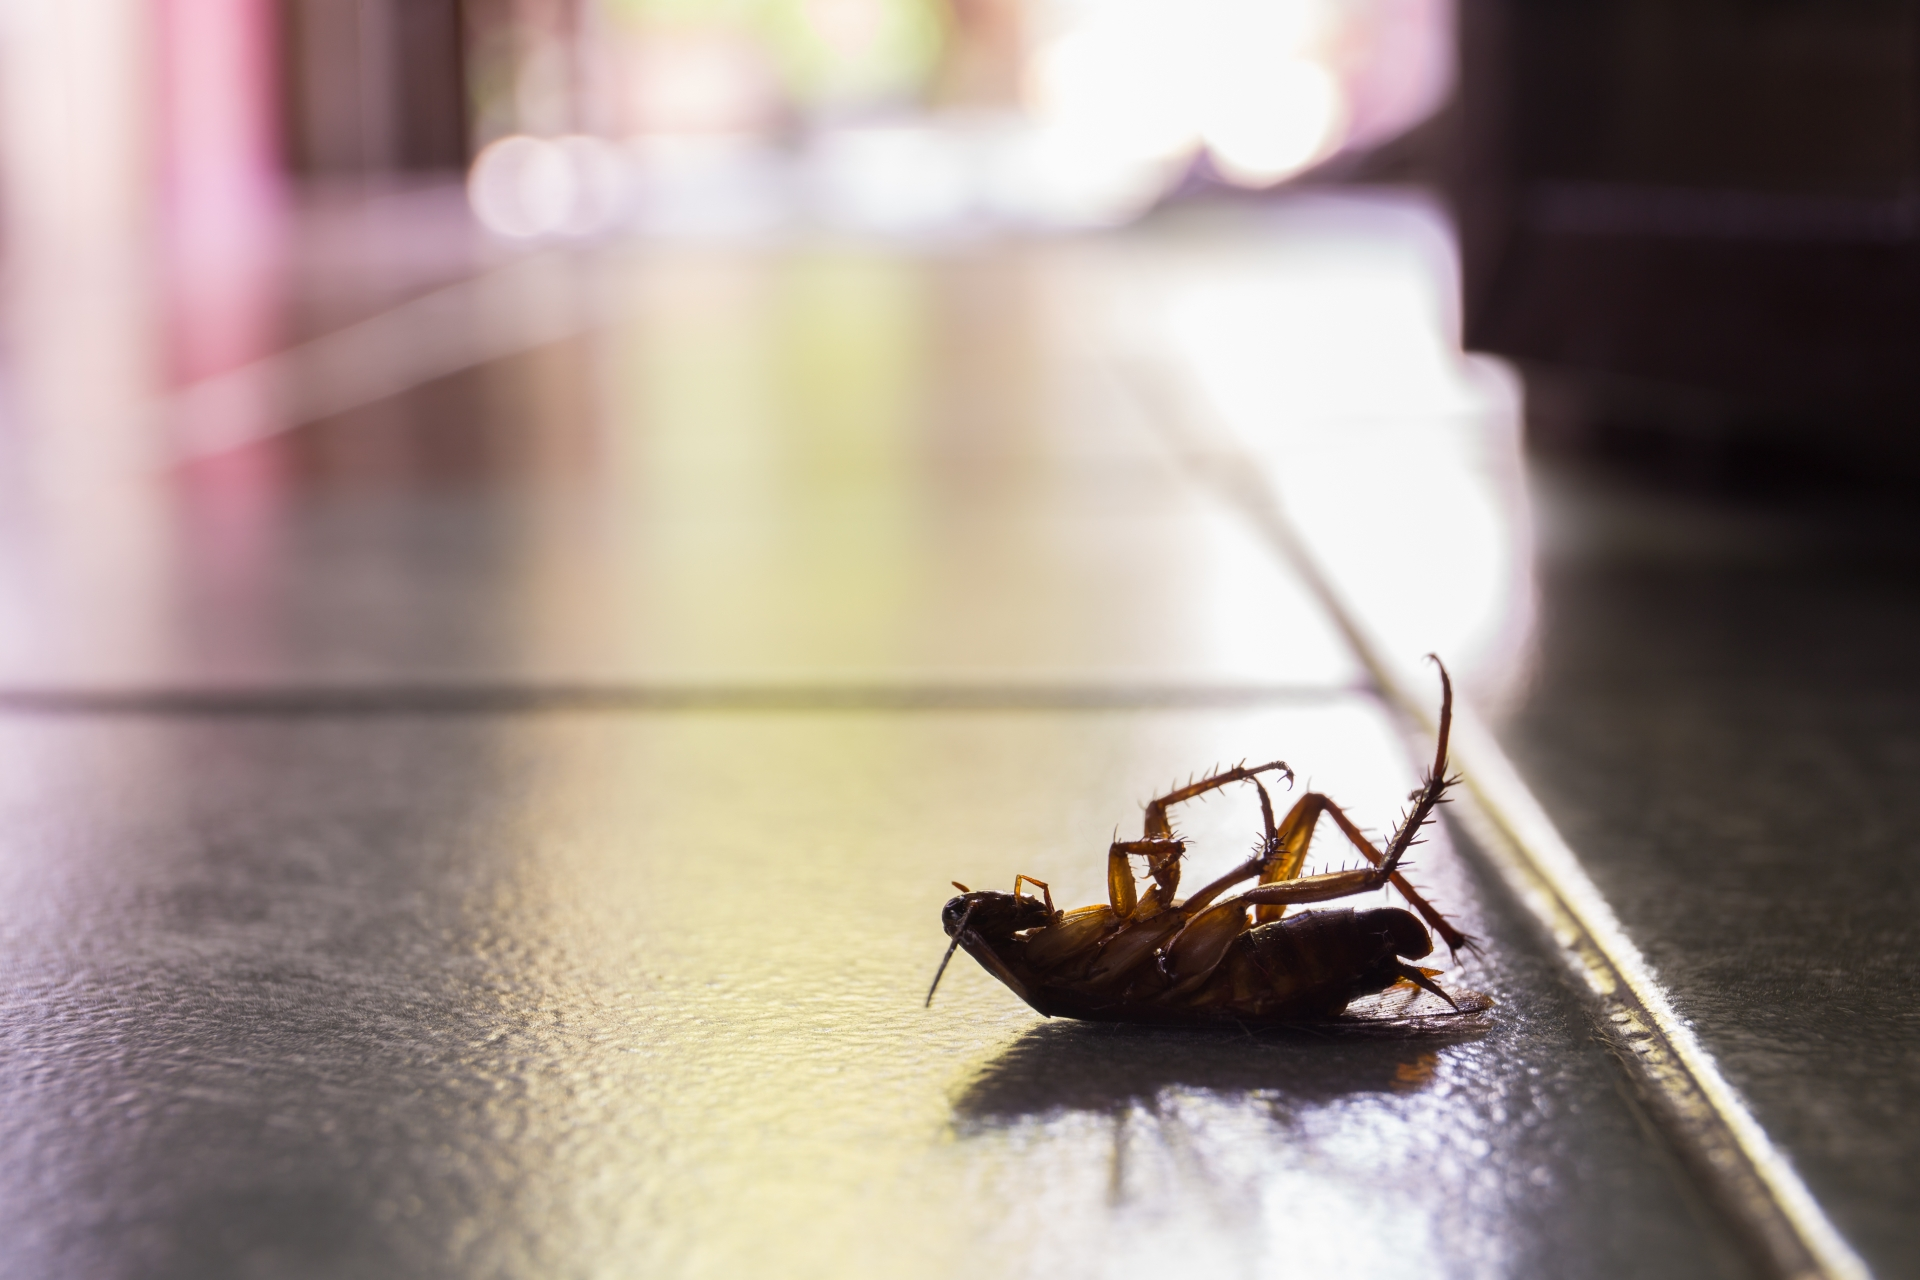 Cockroach Control, Pest Control in Hampton Hill, Hampton, TW12. Call Now 020 8166 9746